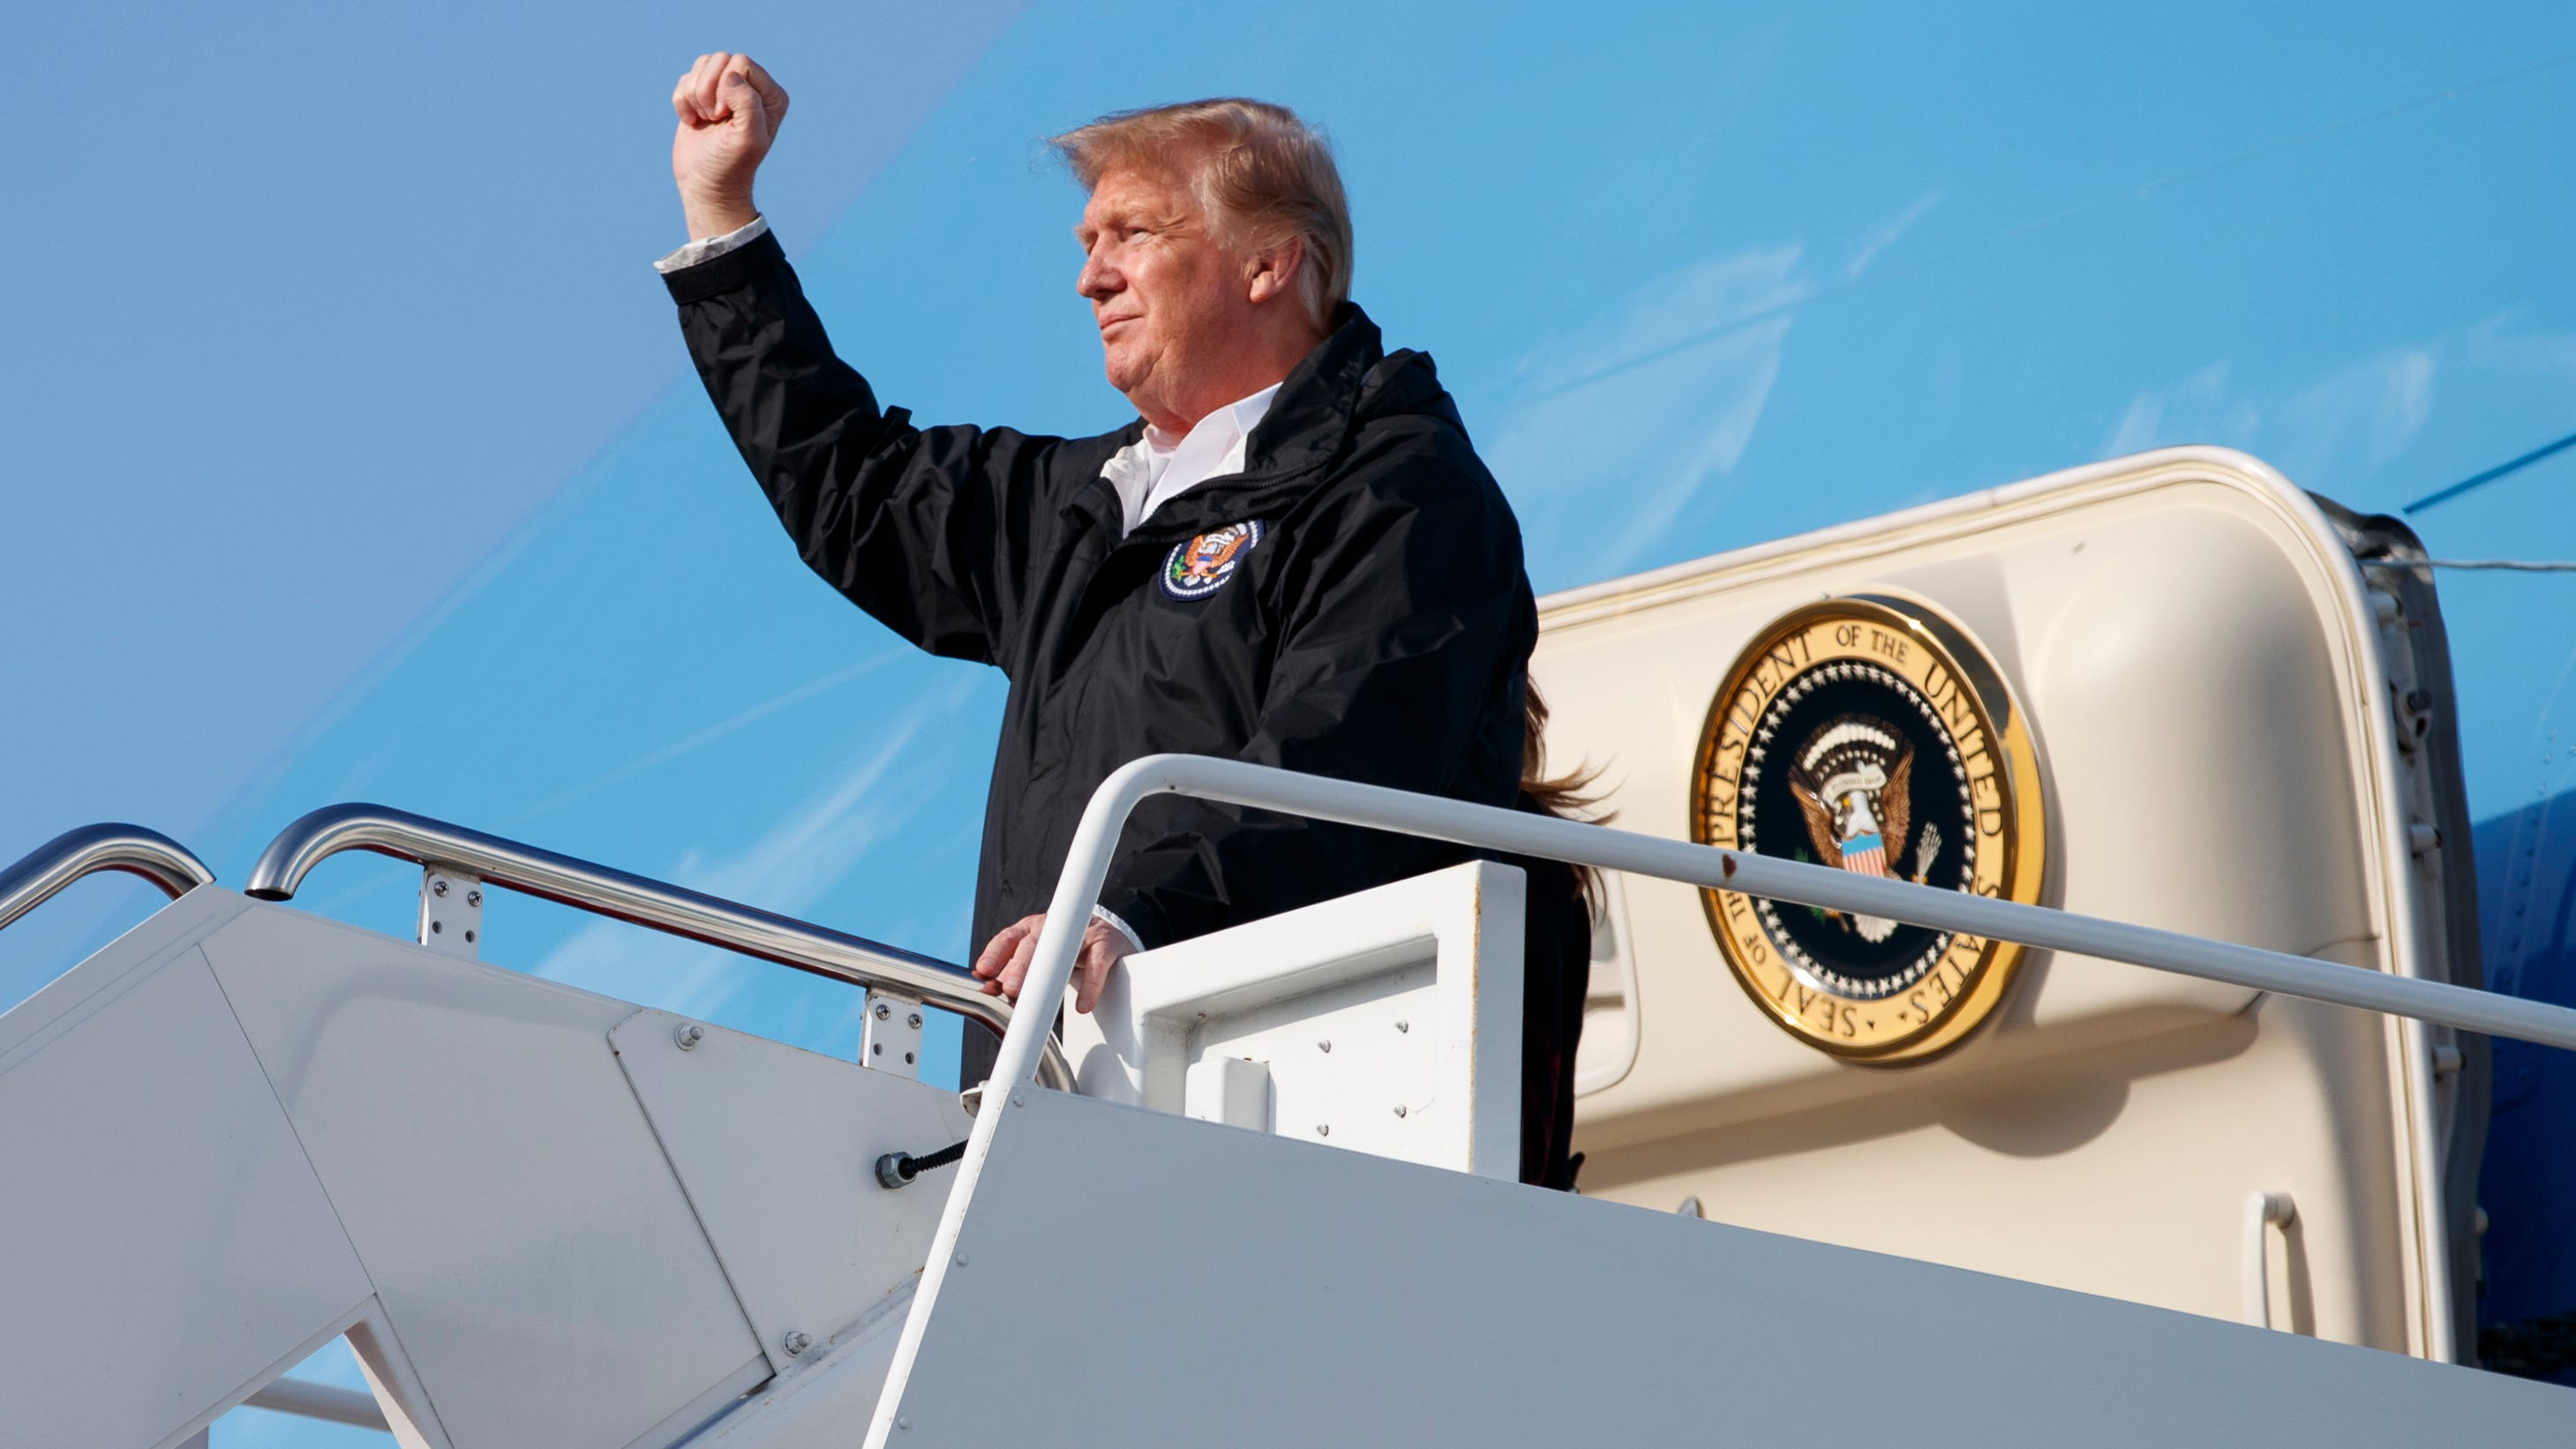 President Donald Trump gestures from Air Force One at Palm Beach International Airport on March 8, 2019.